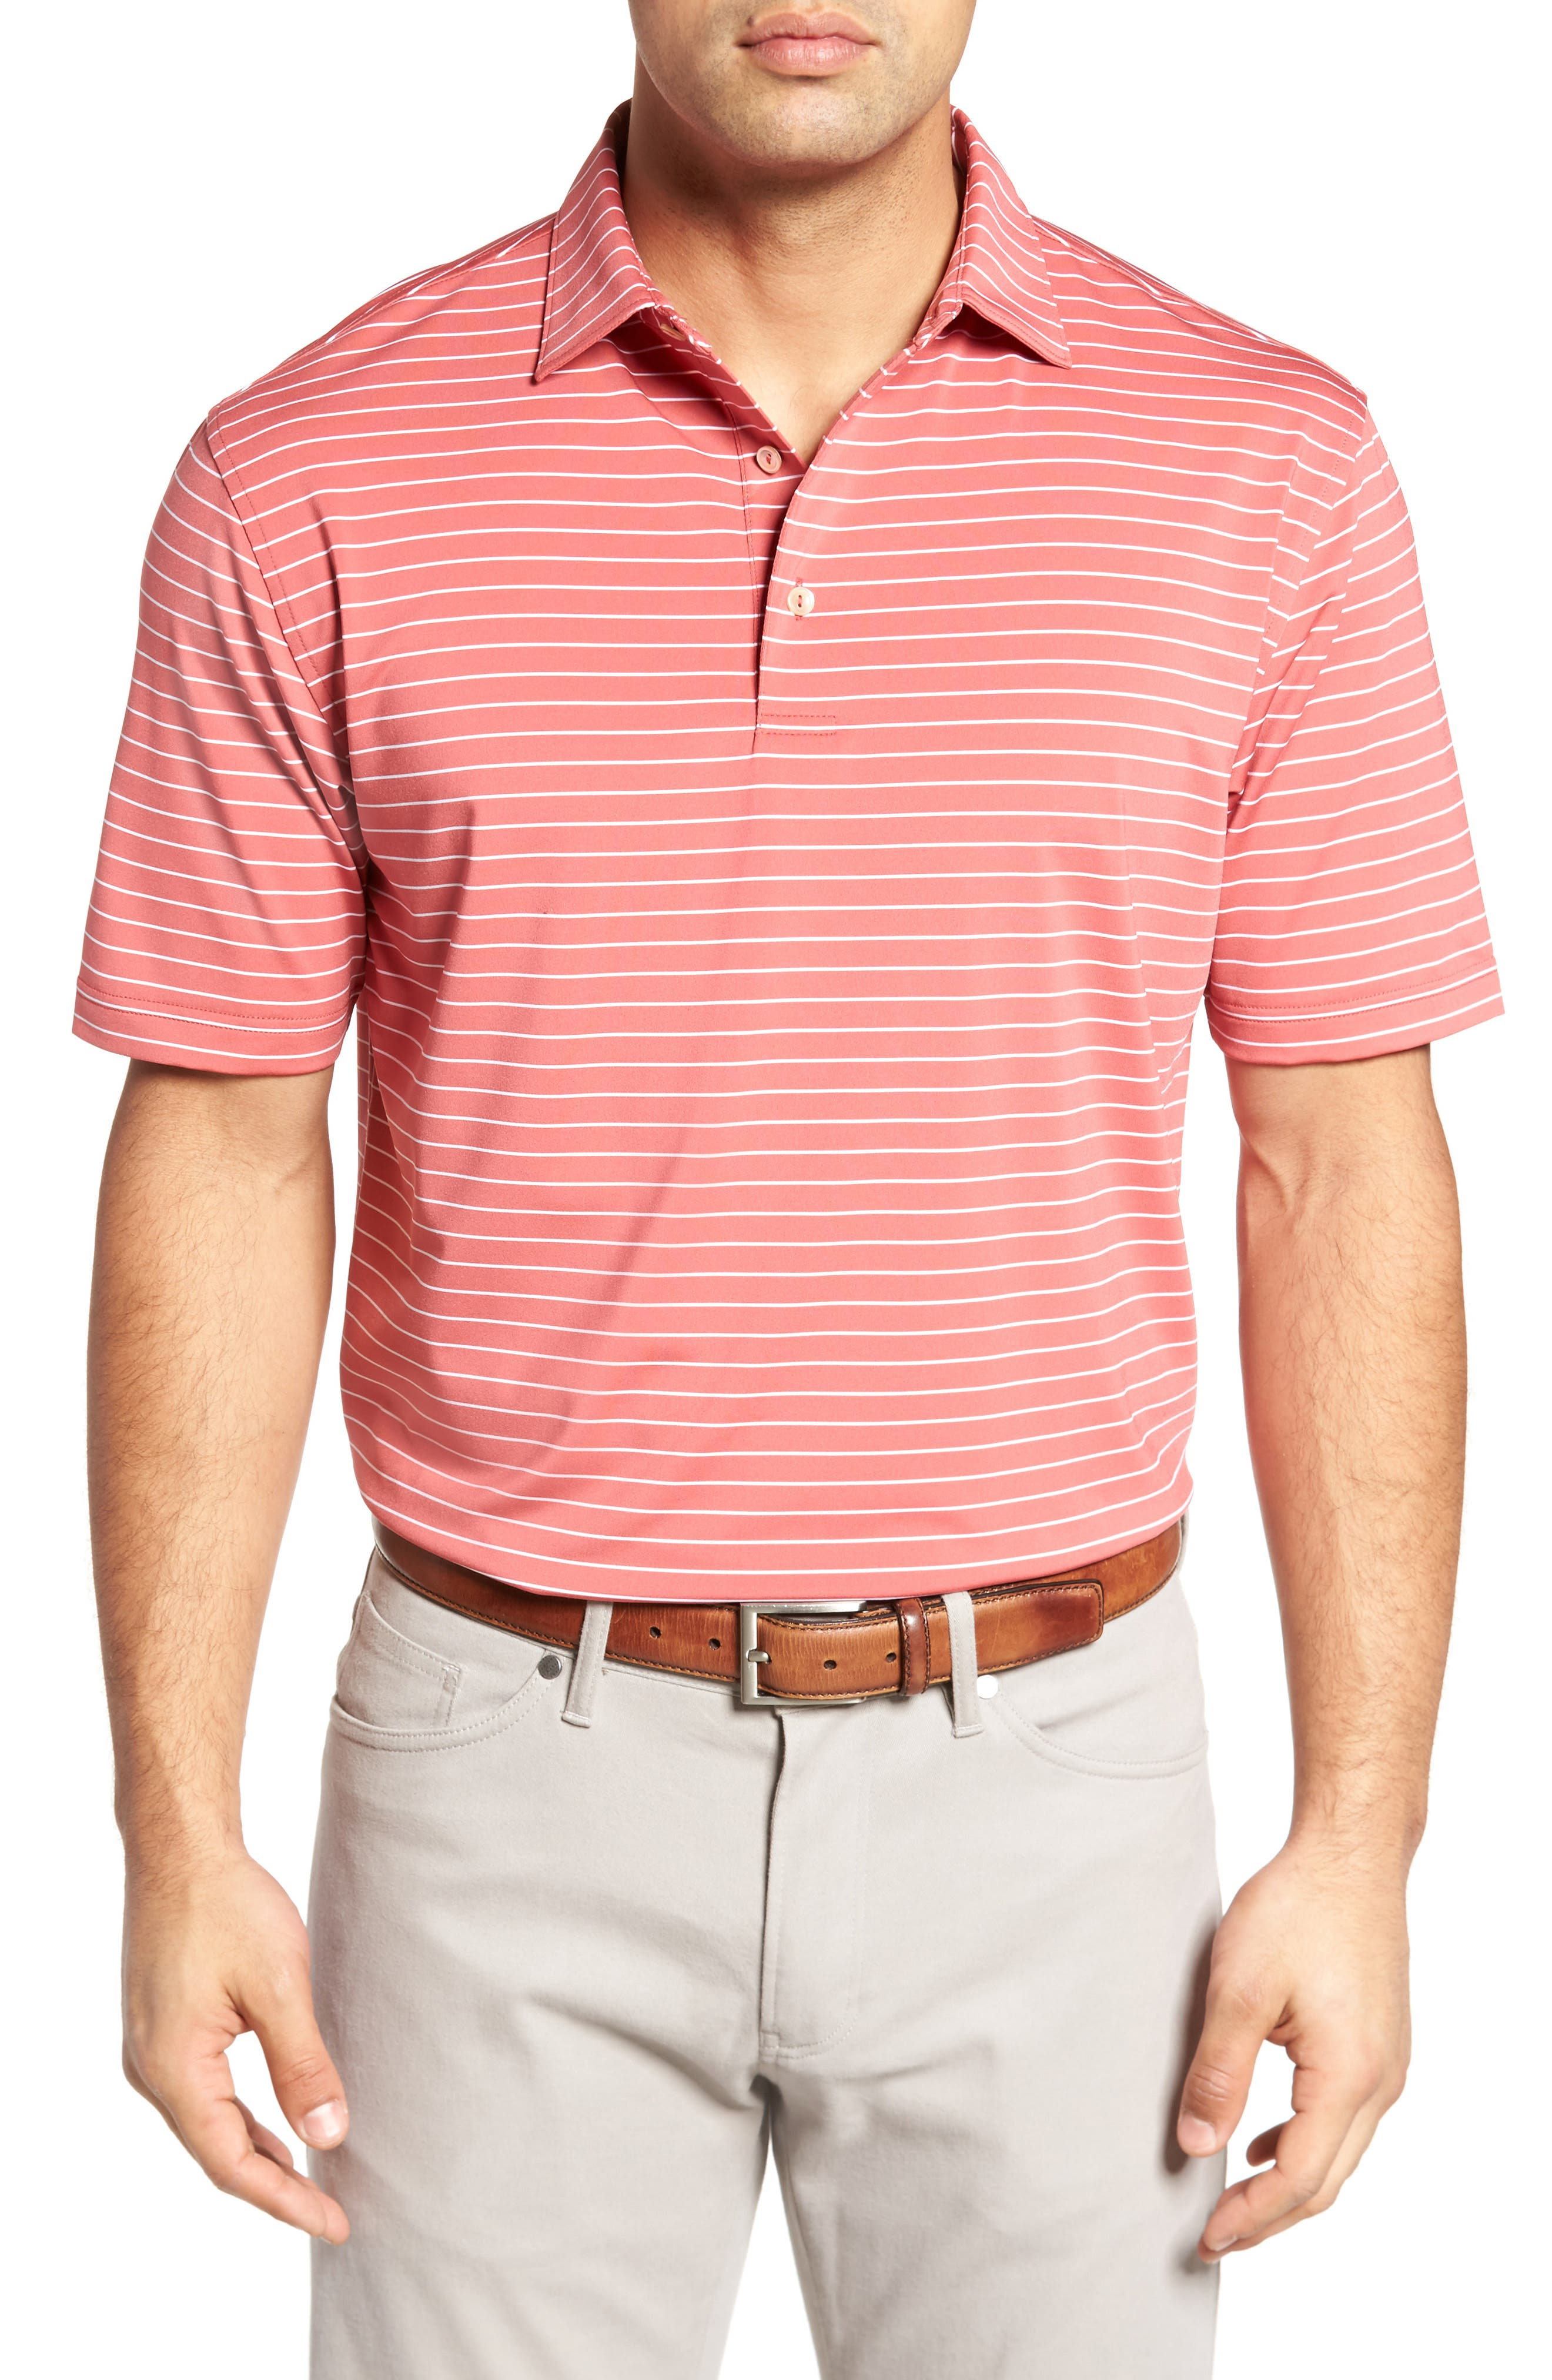 Halifax Pinstripe Stretch Jersey Polo,                         Main,                         color, Cape Red